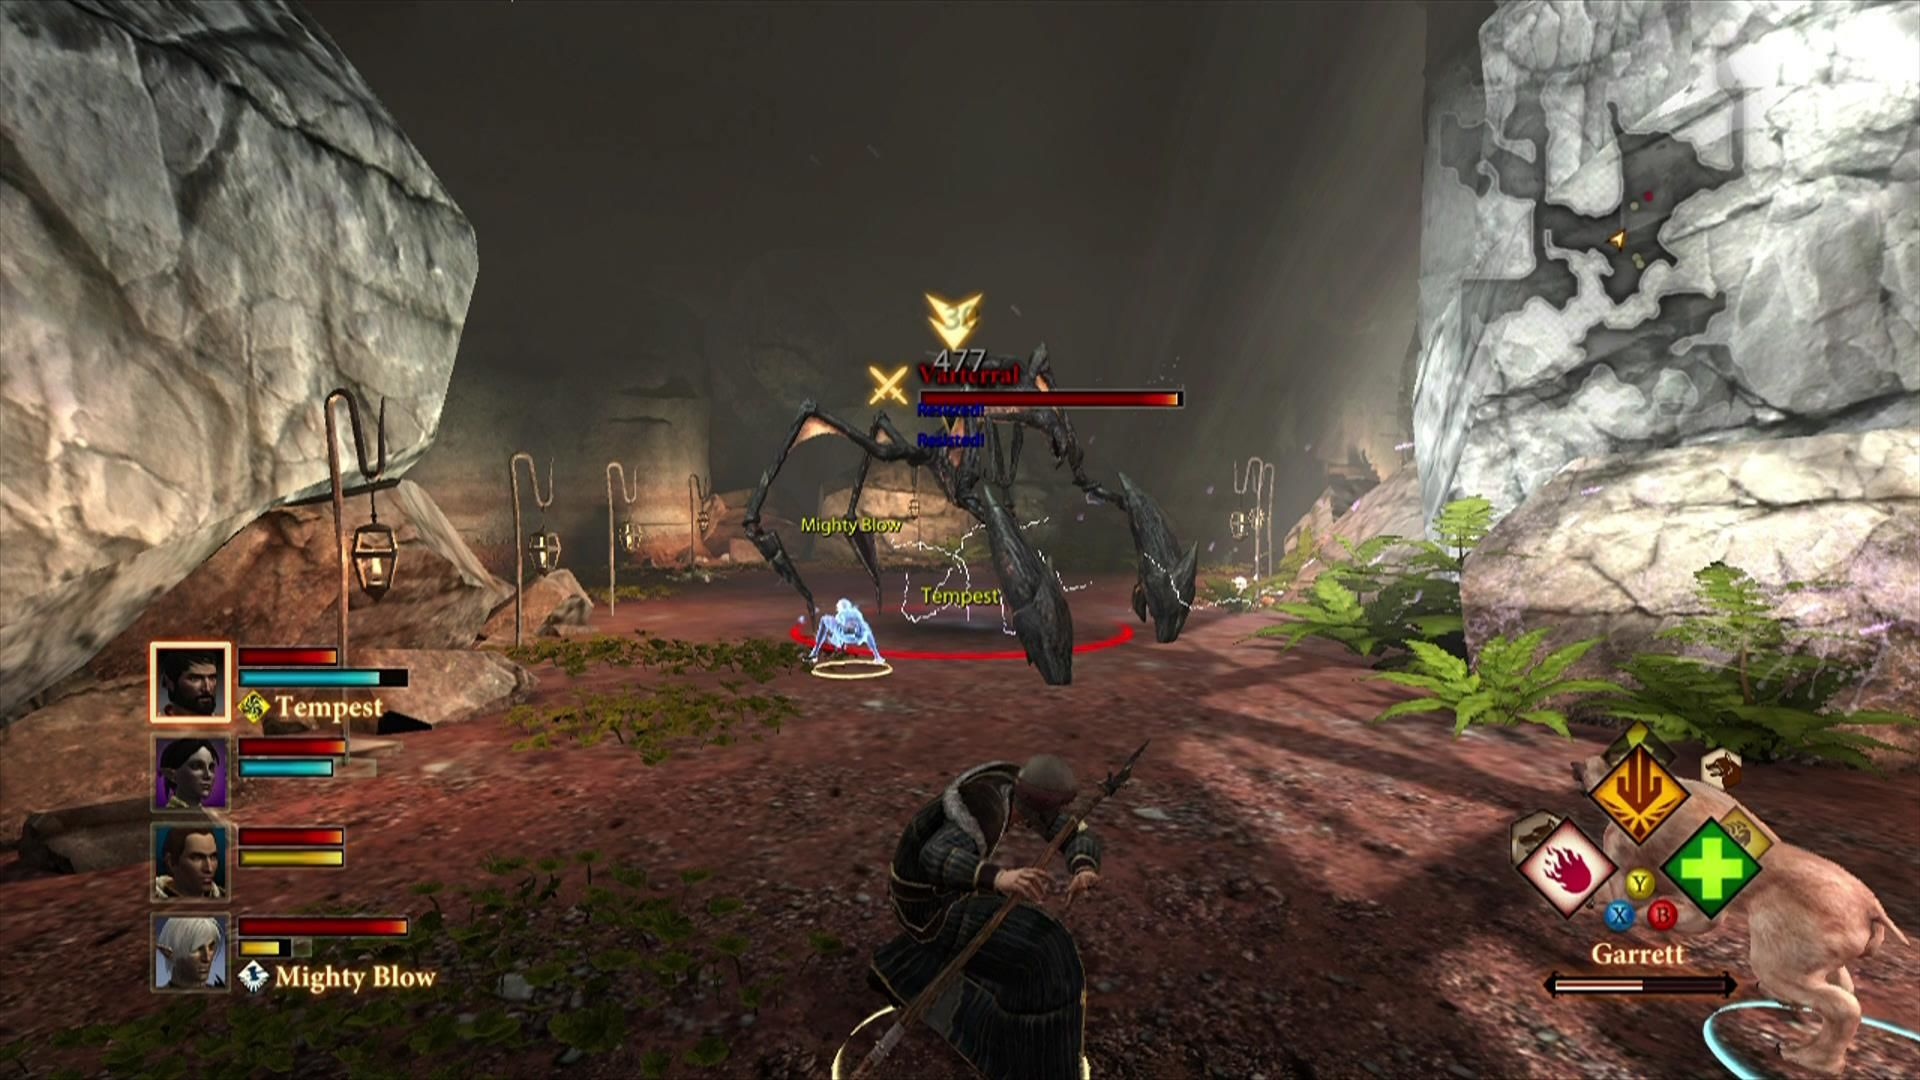 Dragon Age II Xbox 360 The Vartteral is a formidable enemy .. do not underestimate it